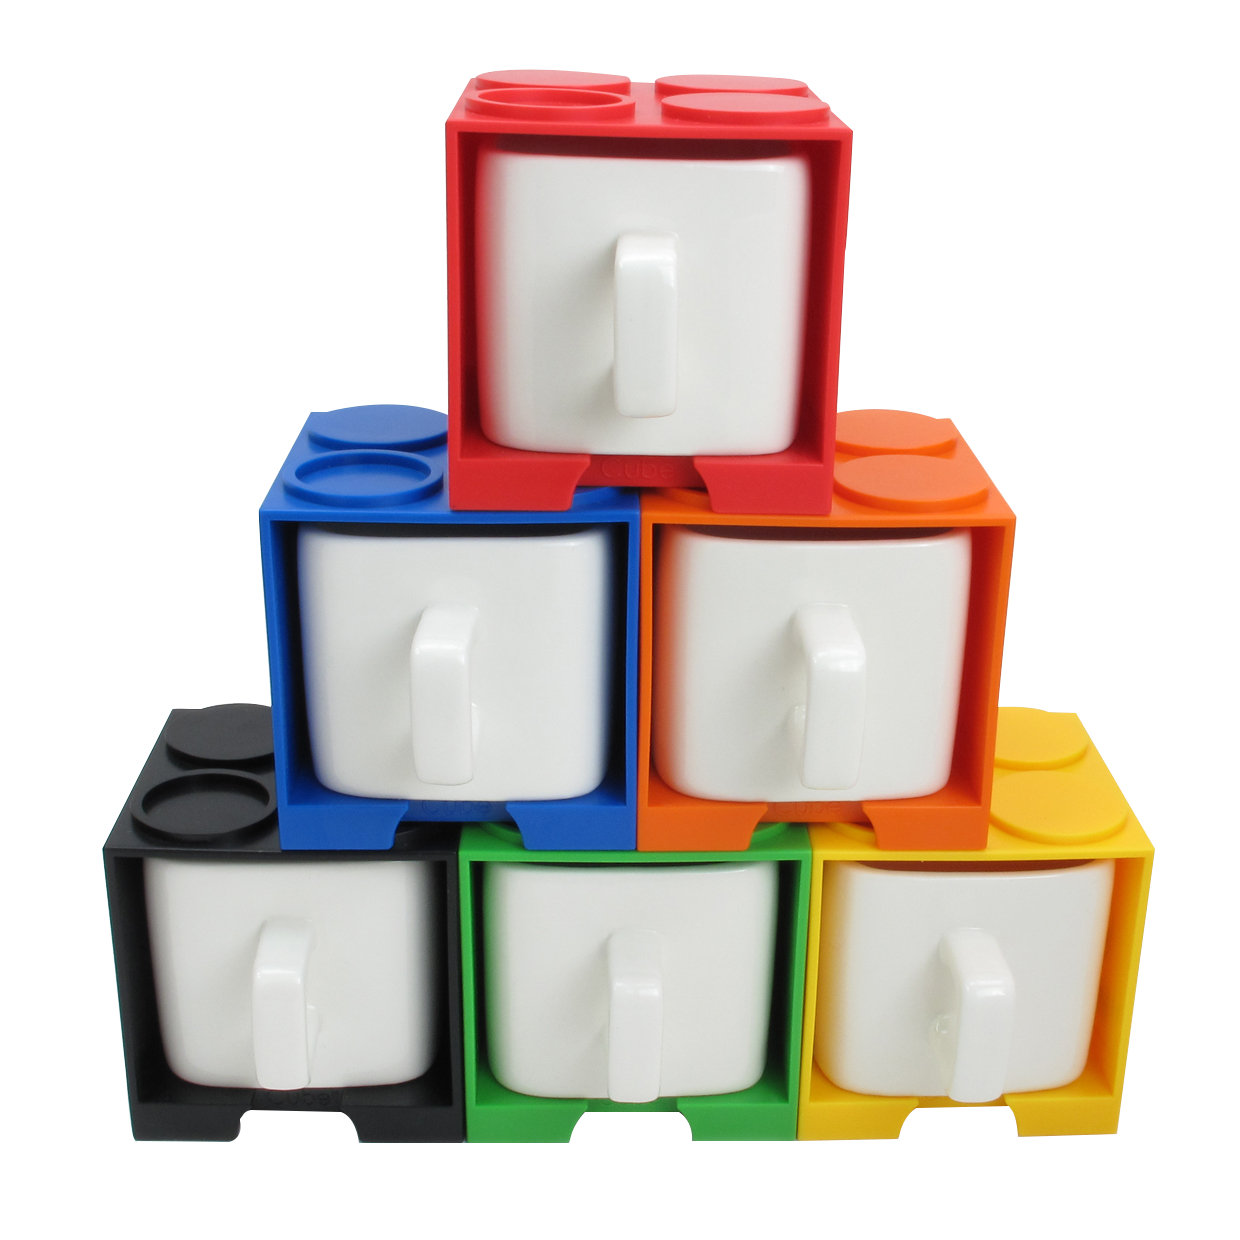 Cube Coffee Mug With Lego Shaped Stackable Storage Container Invention Vovogifts Gadget